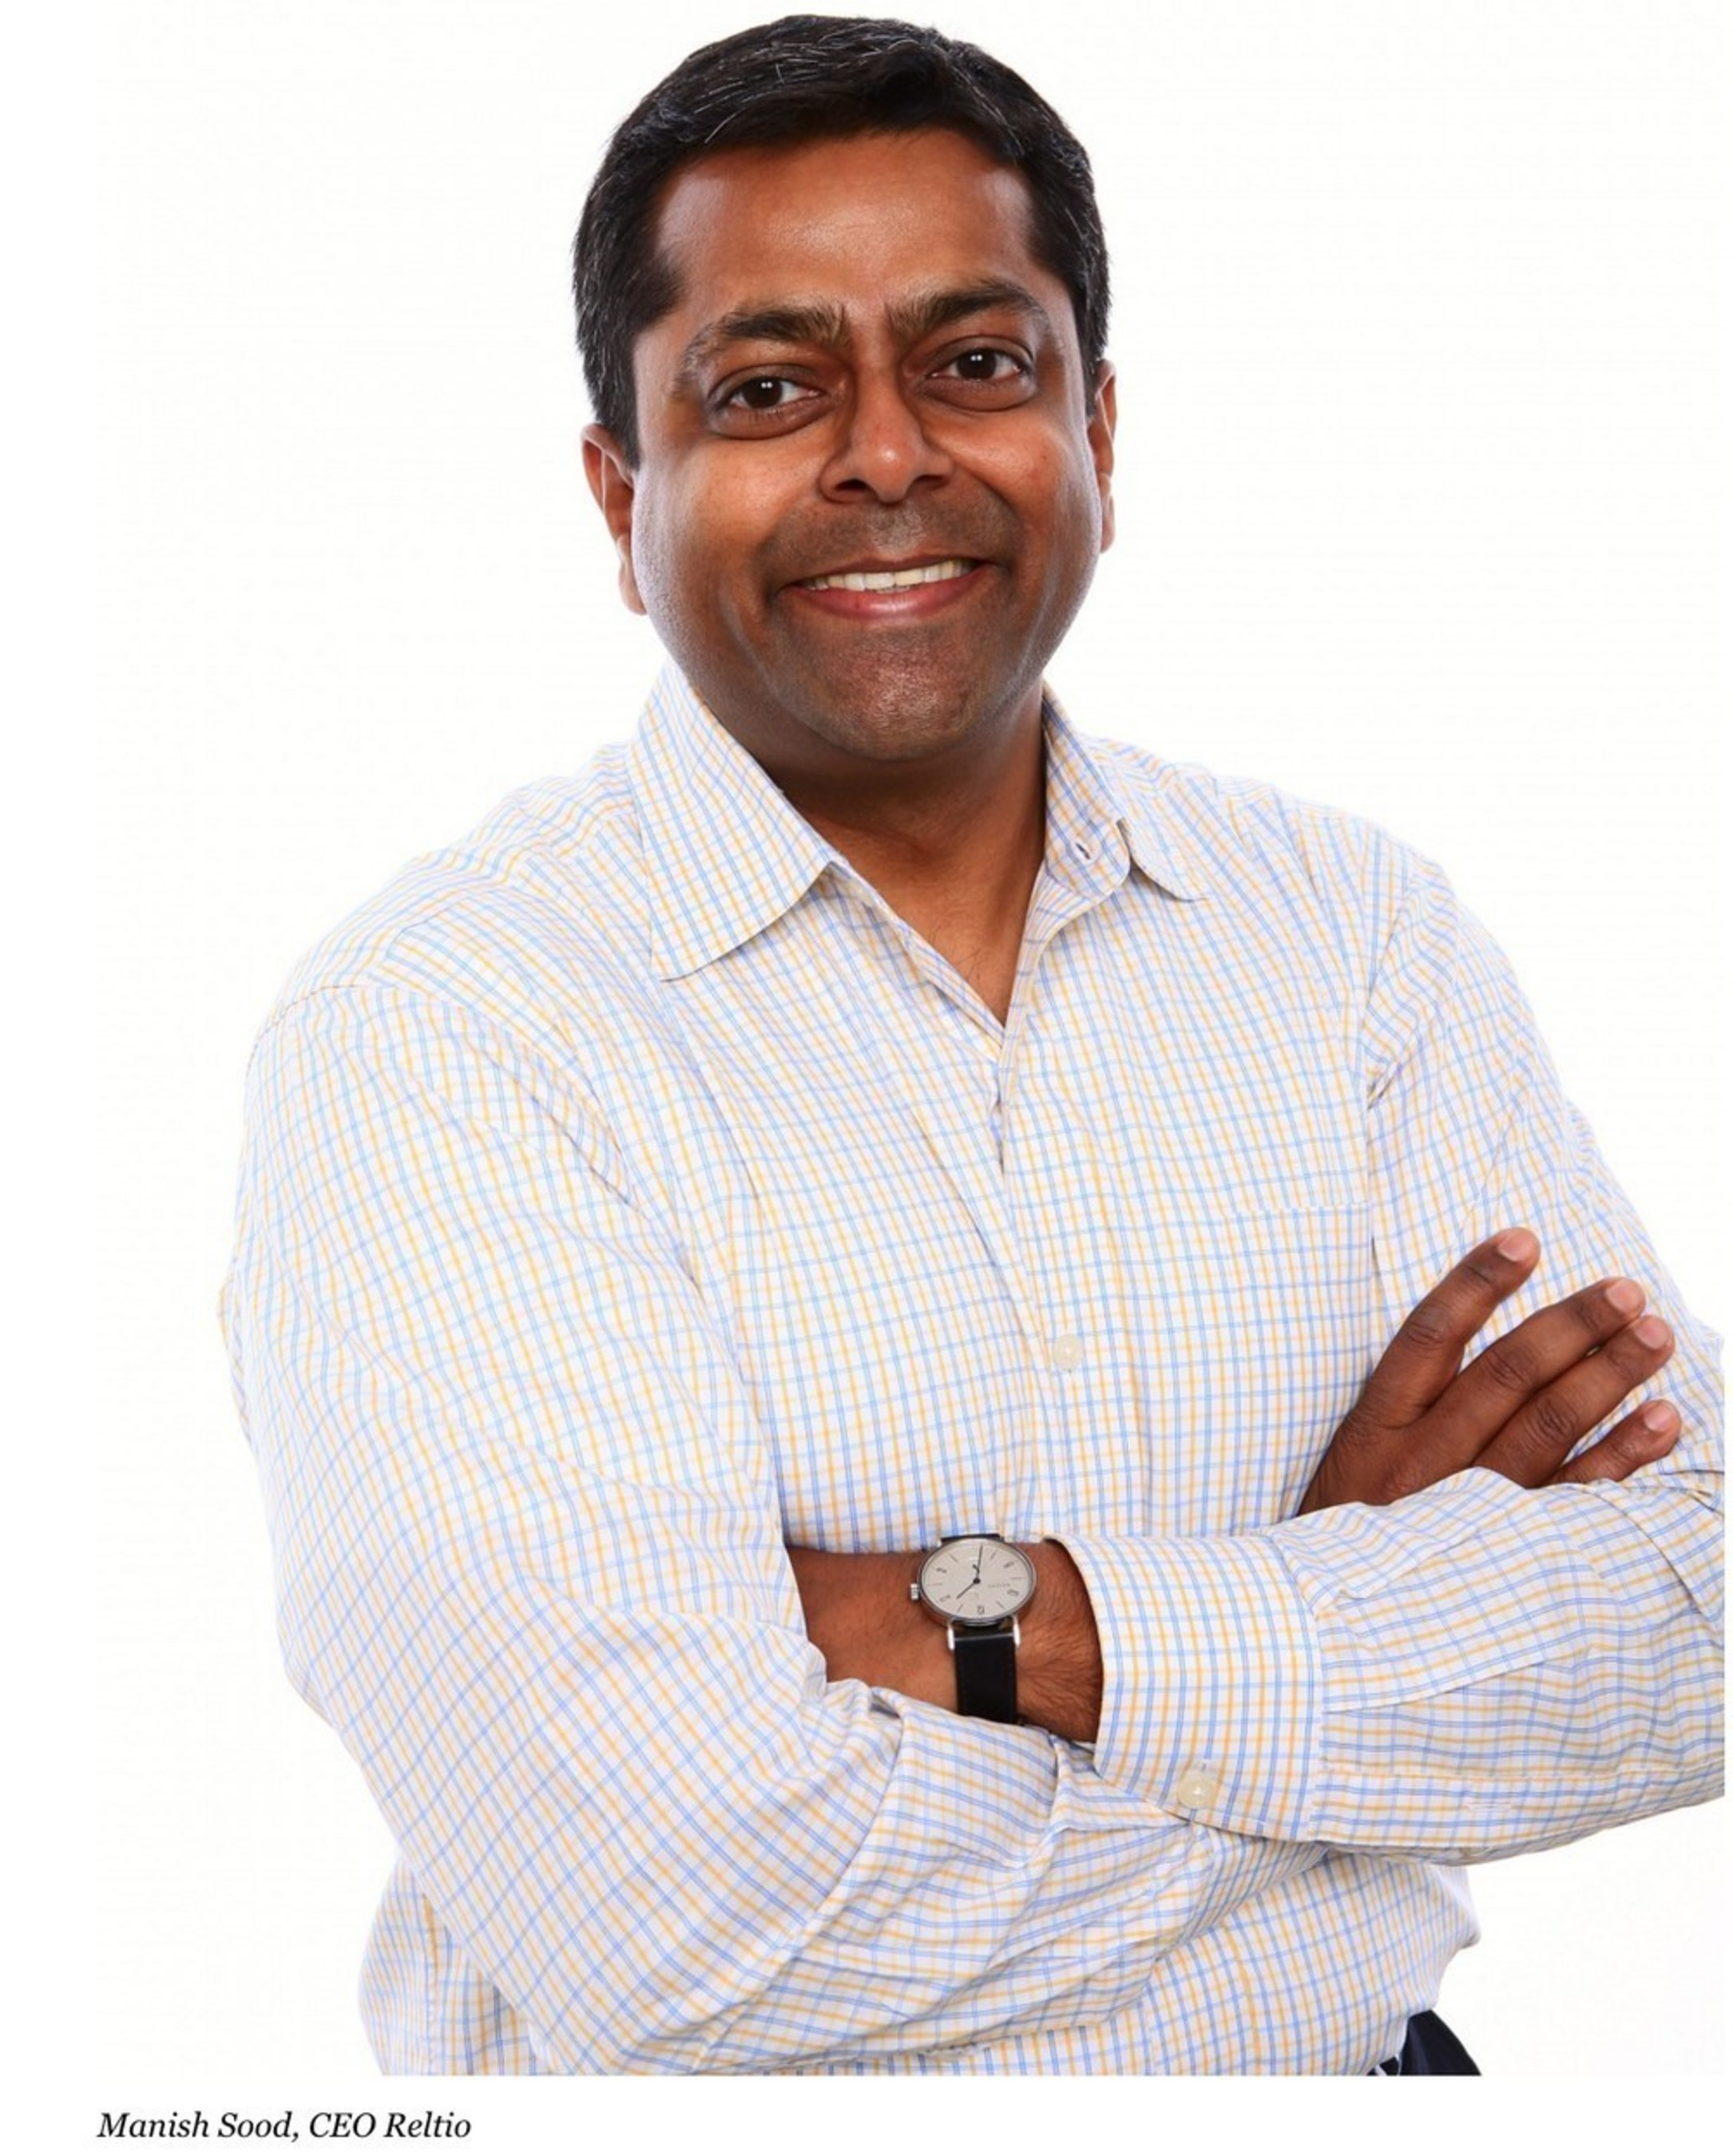 Manish Sood, founder and CEO, Reltio